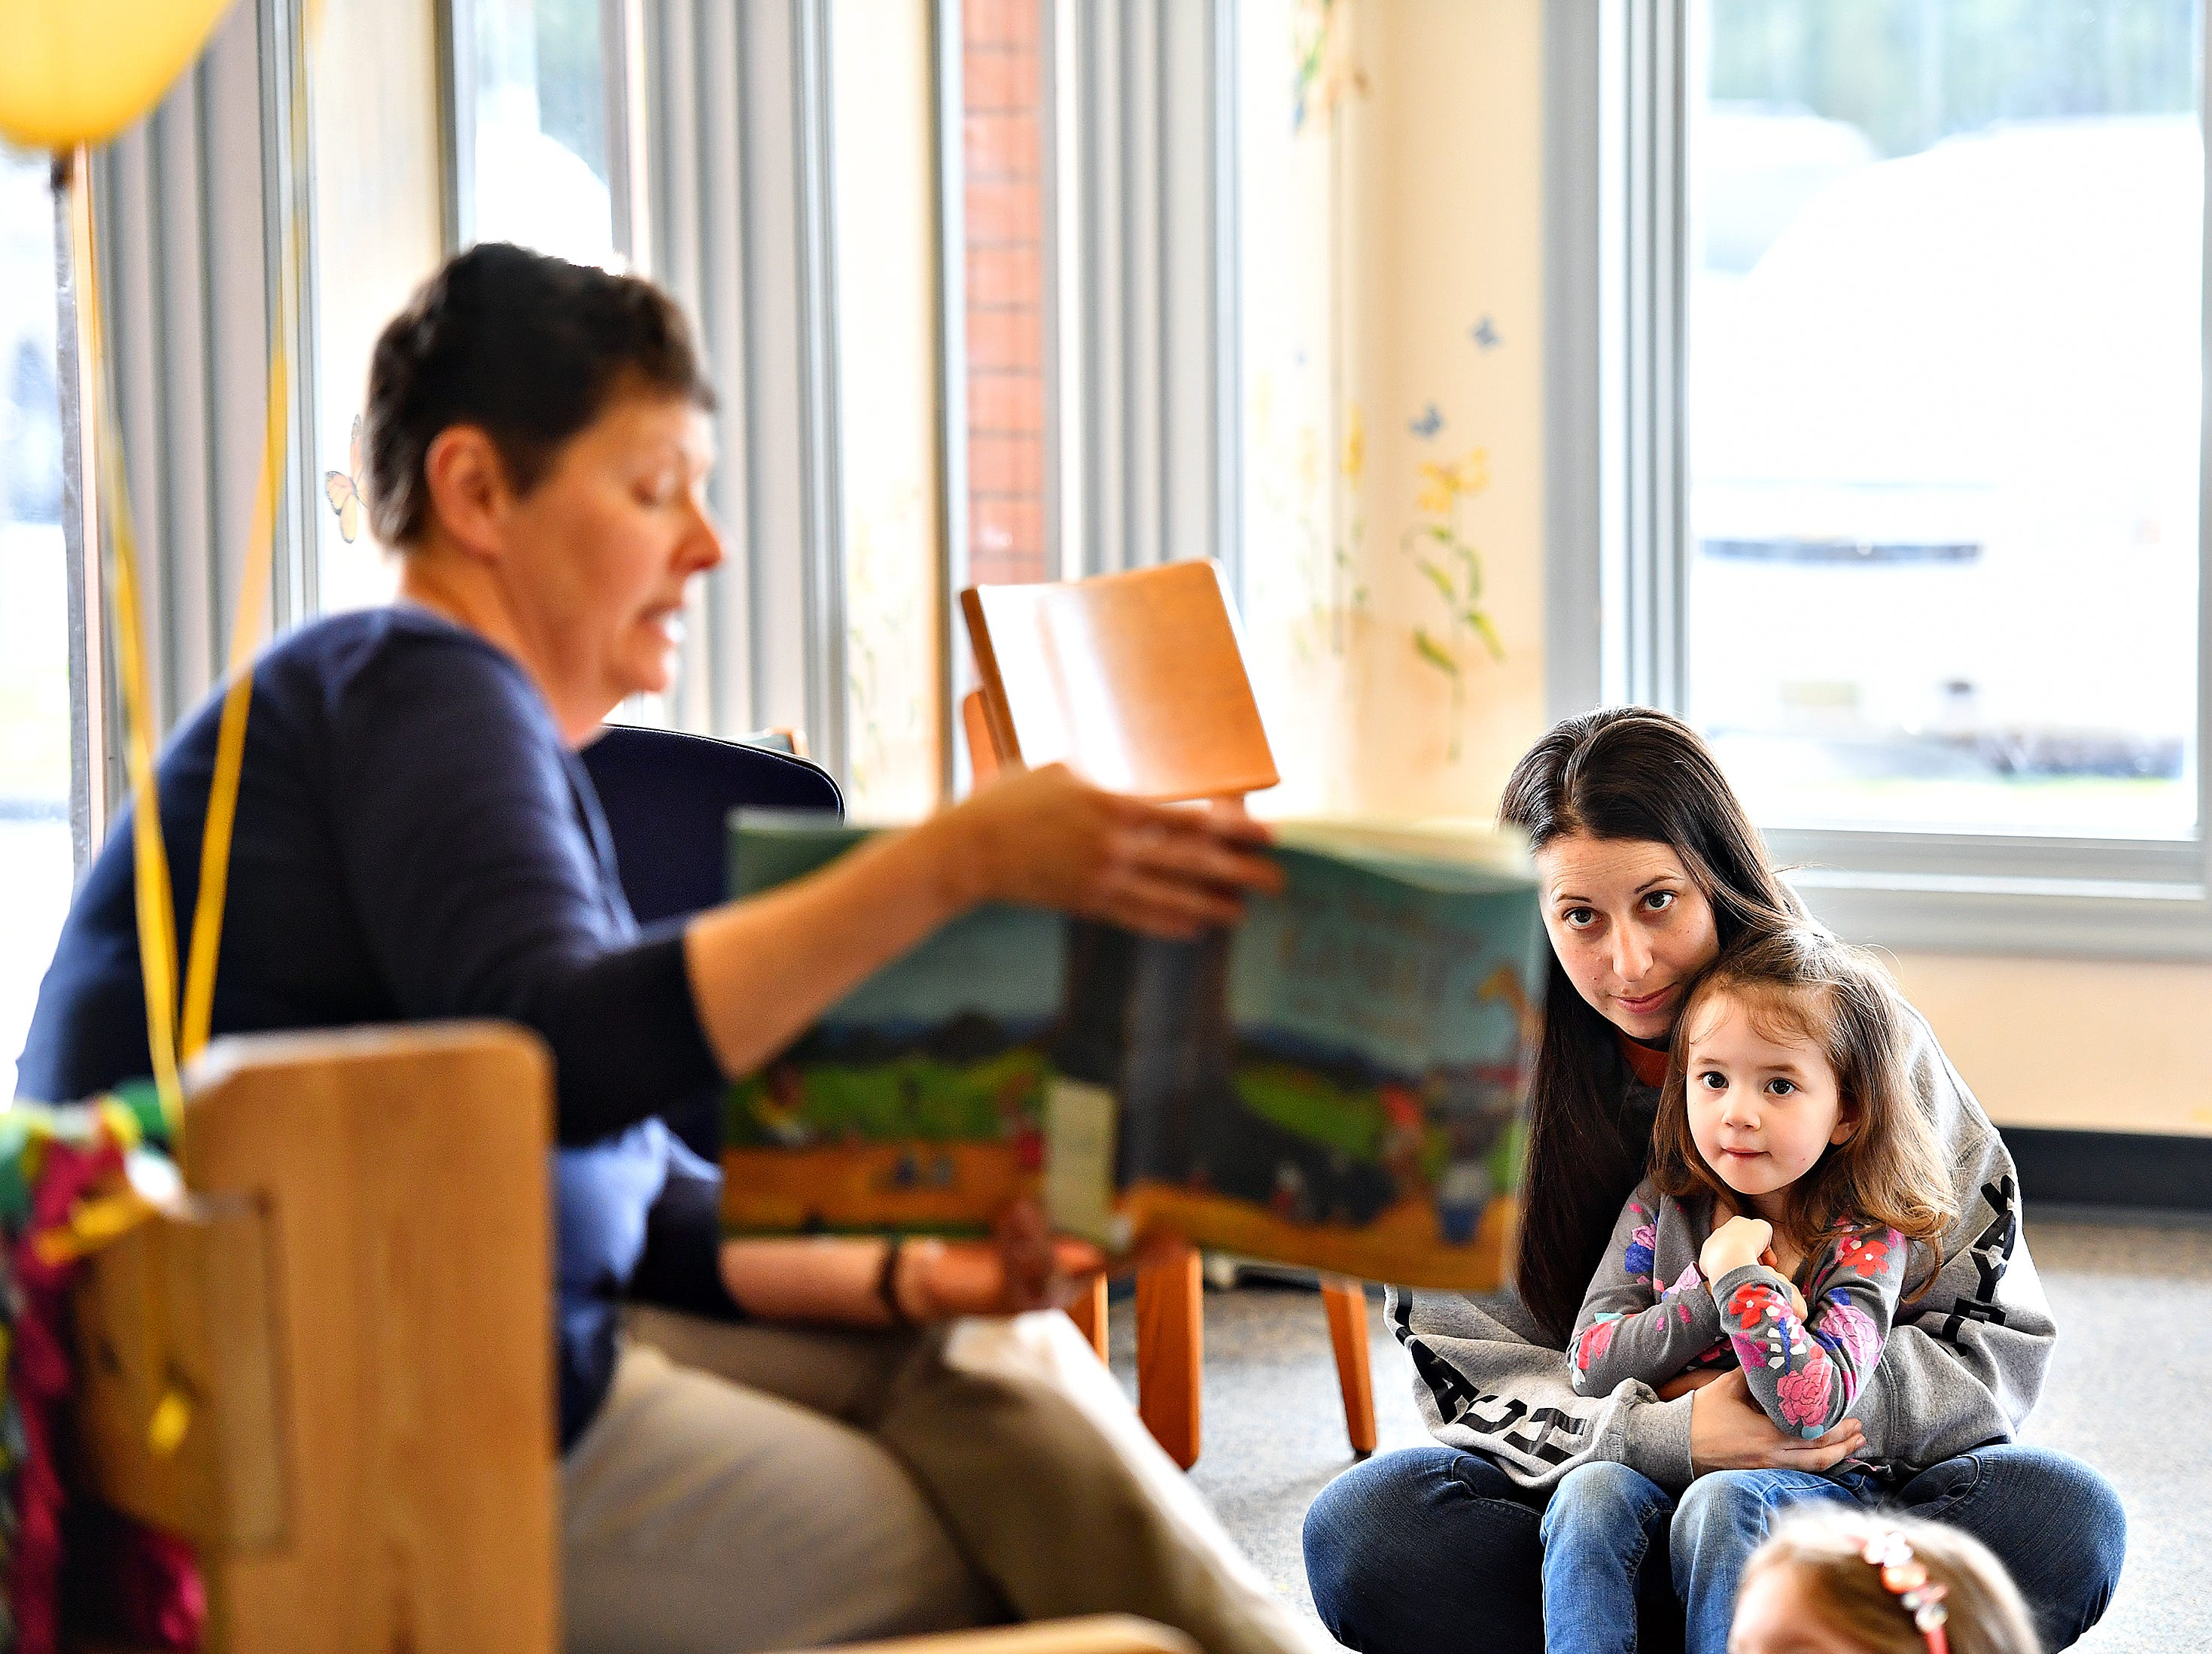 Sarah Leonard,  back right, of North Codorus Township, holds her daughter Emma Leonard, 3, as they attentively listen to Glatfelter Memorial Library Board Vice President Ann Seitz-Brown as she reads during the Annual Read-a-thon event in Spring Grove, Saturday, April 6, 2019. Dawn J. Sagert photo